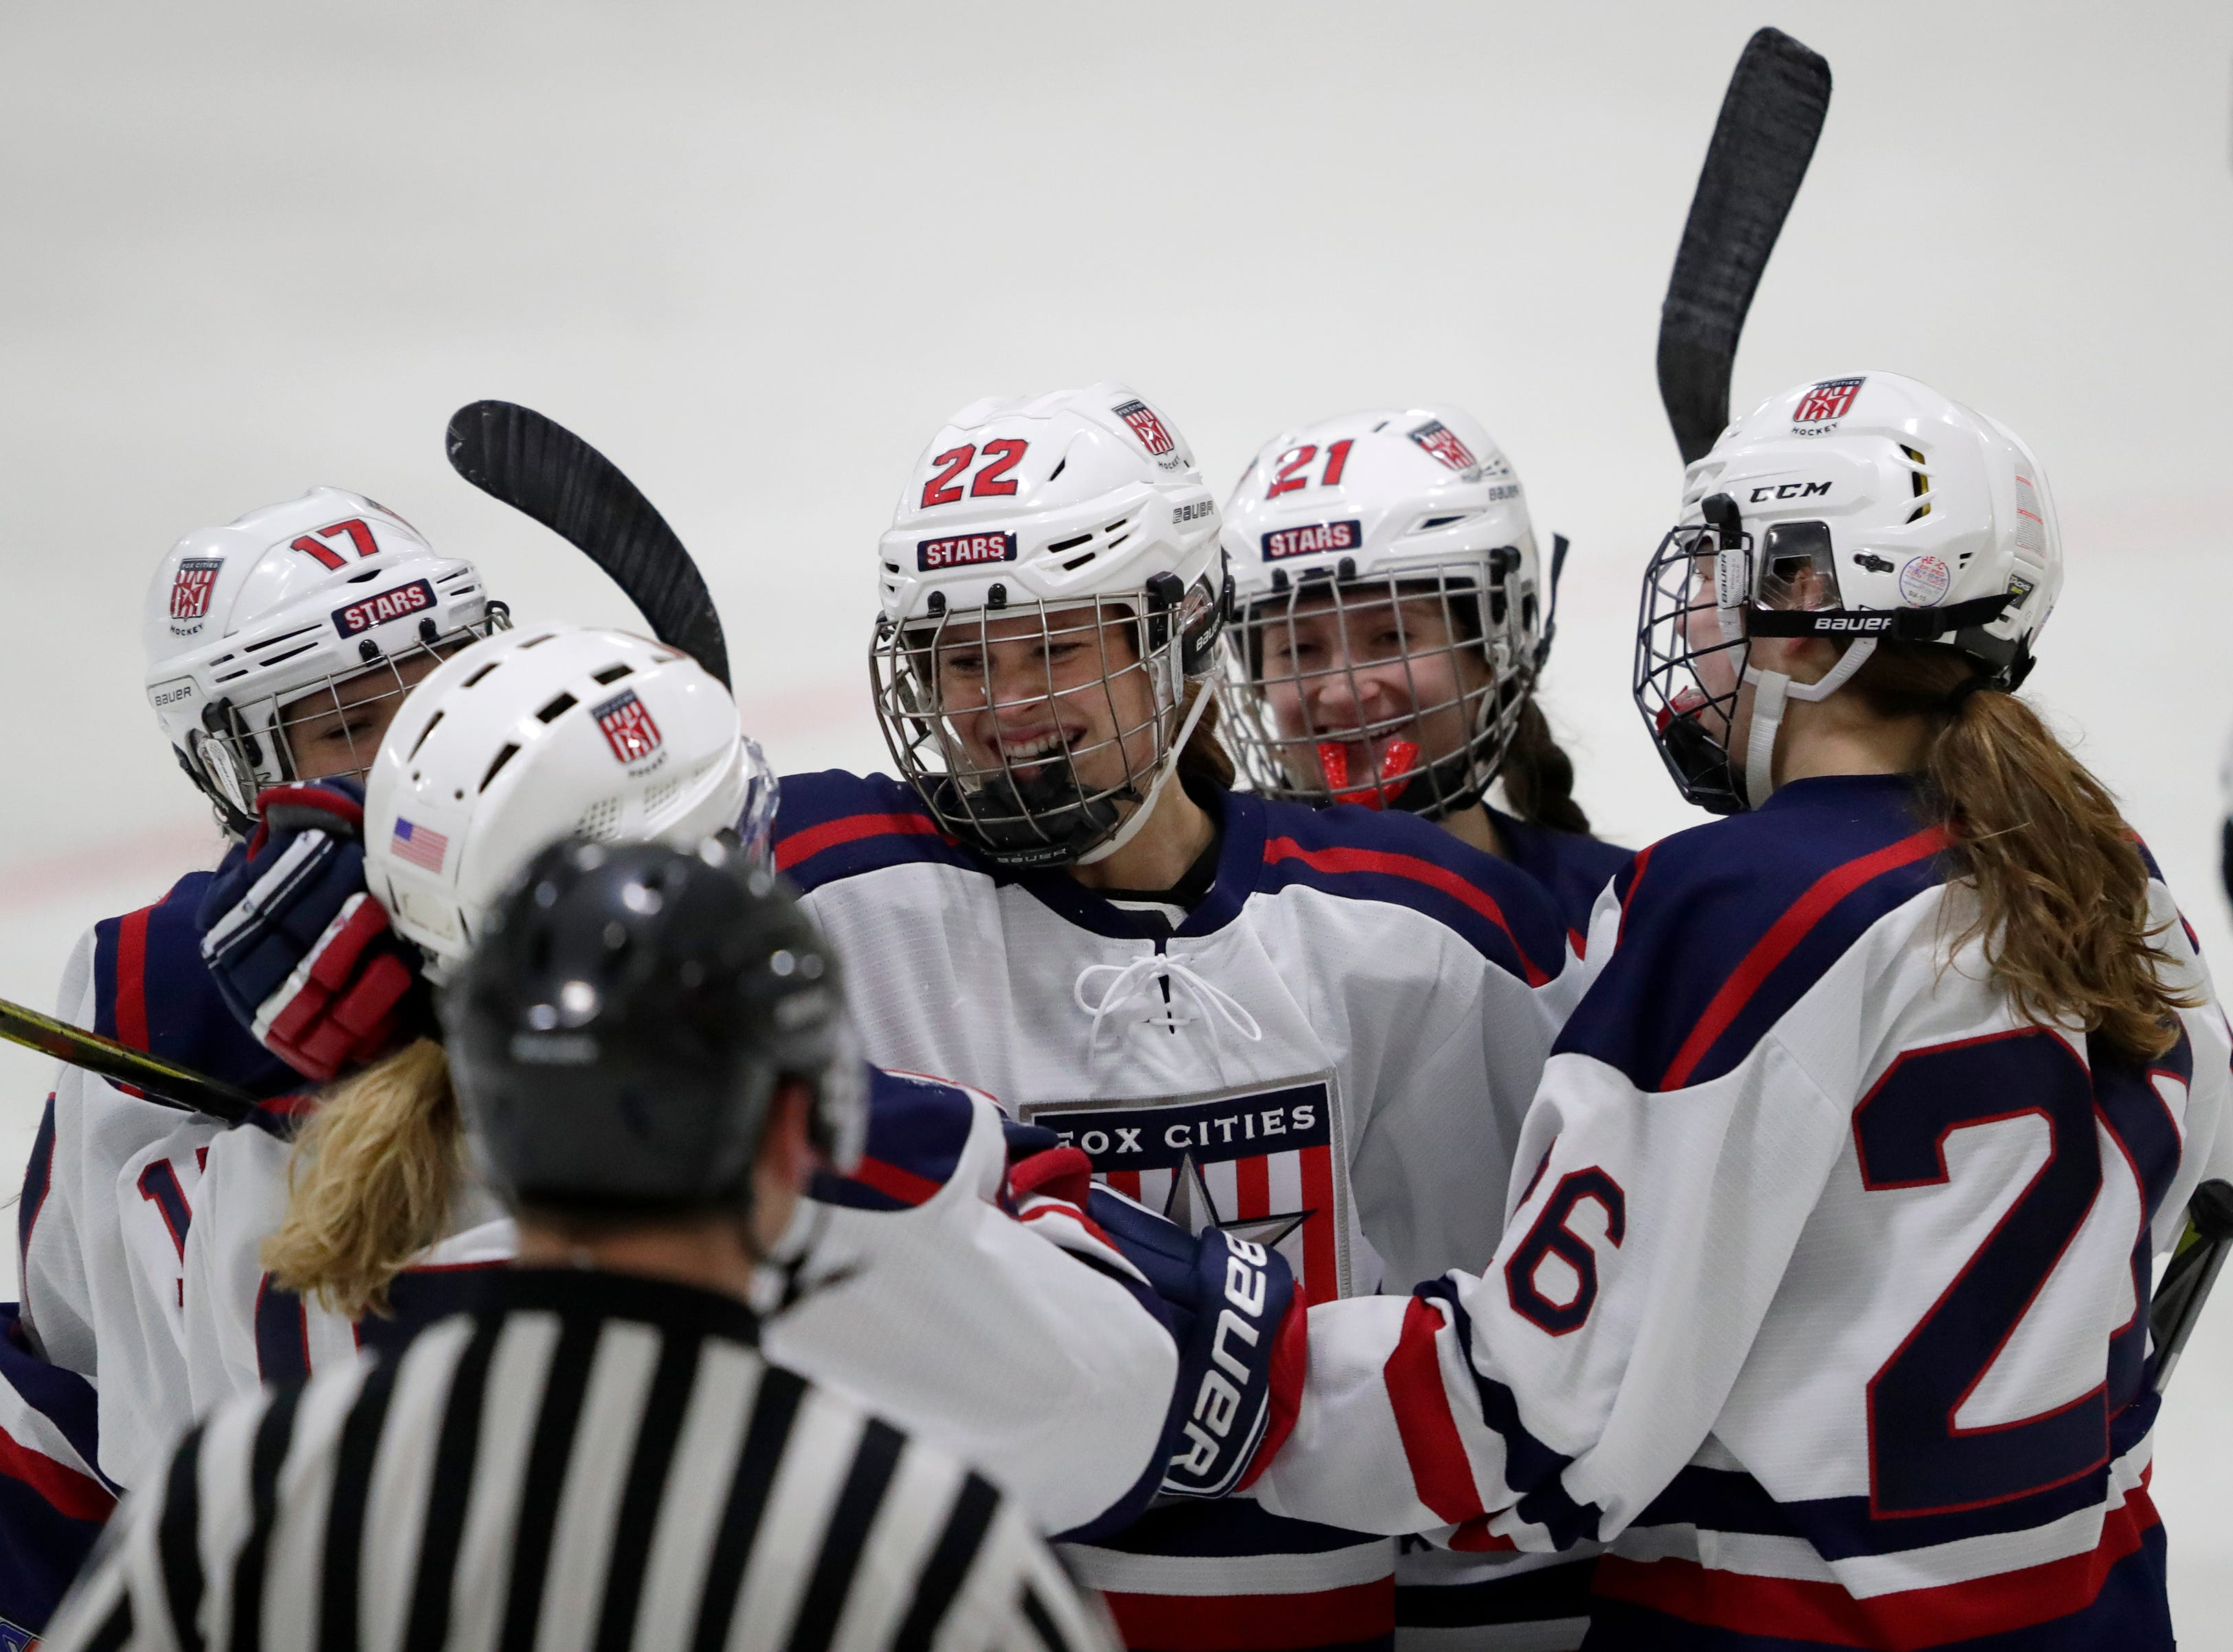 Fox Cities Stars' Riley Maulick (22) celebrates scoring a goal with teammates against the Warbirds during their girls hockey game Thursday, January 10, 2019, at Tri-County Ice Arena in Fox Crossing, Wis. 